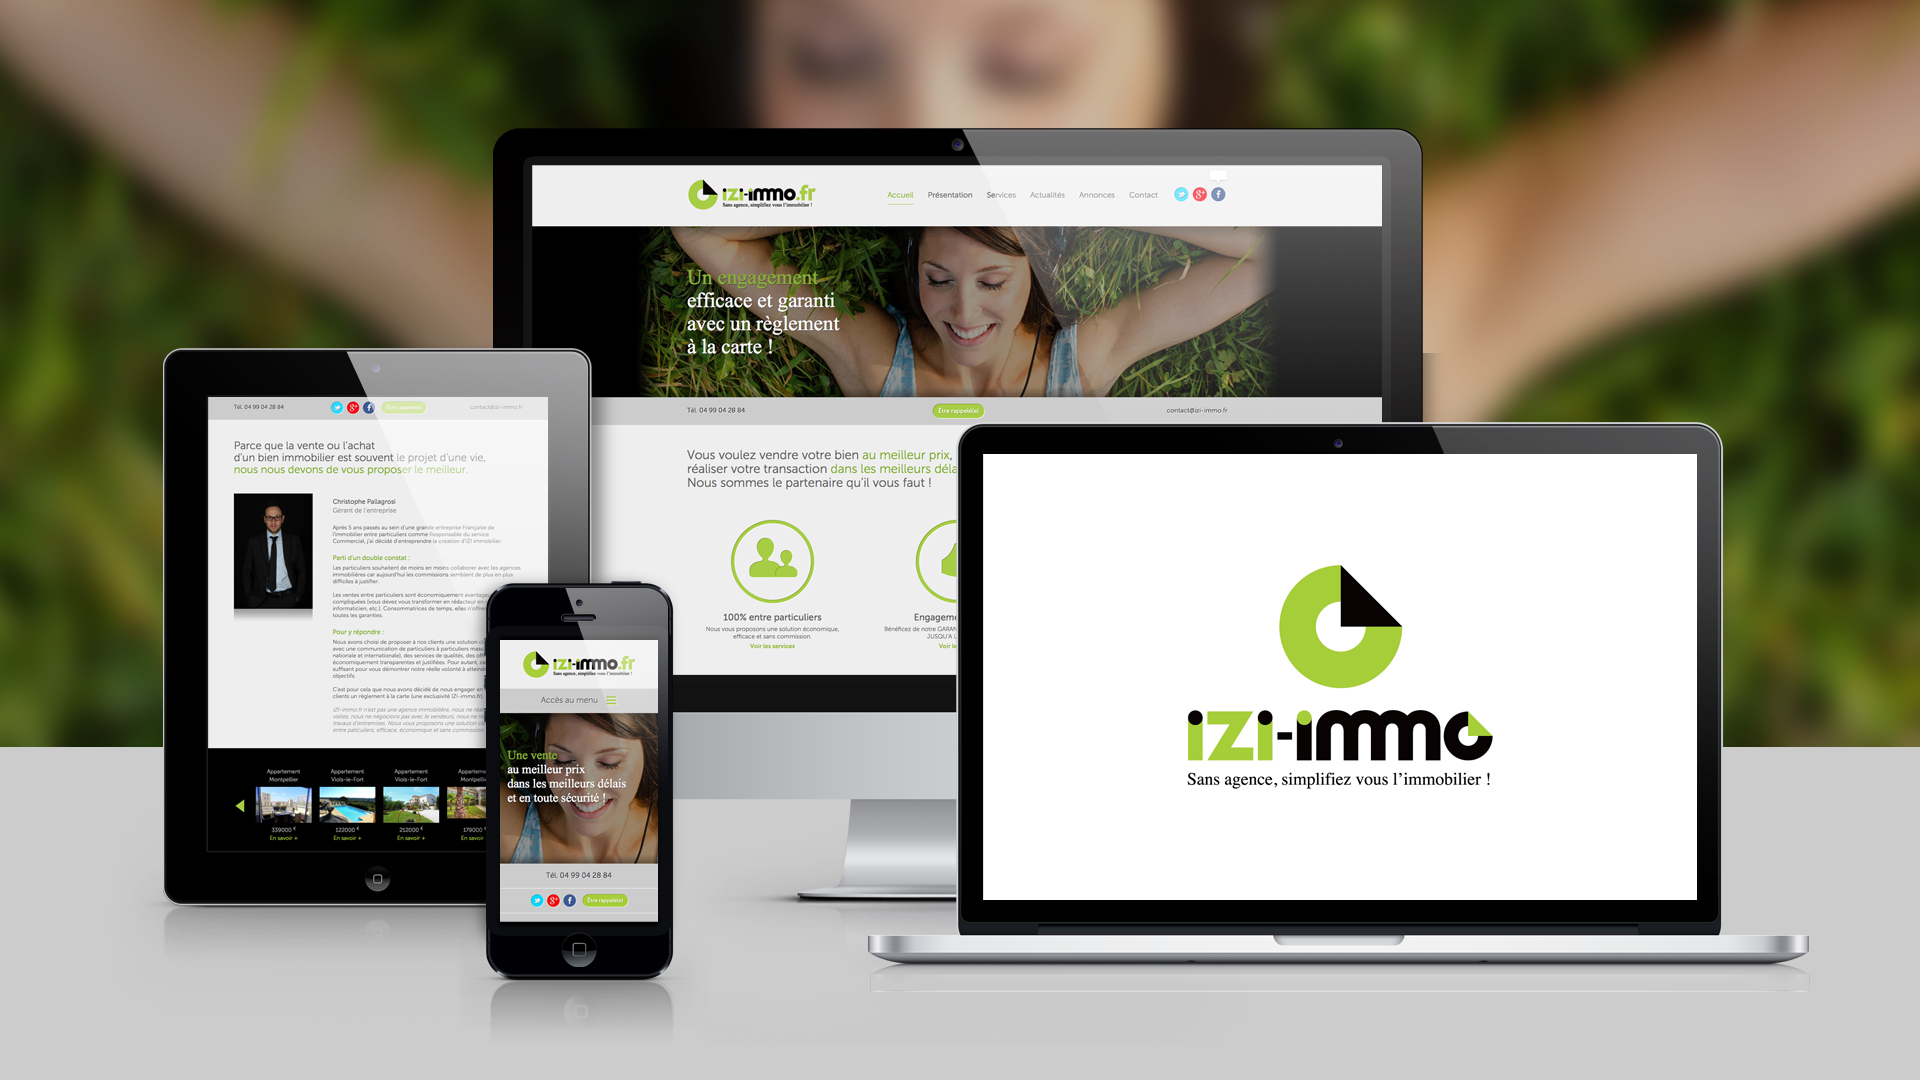 izi-immobilier-creation-site-internet-responsive-design-communication-caconcept-alexis-cretin-graphiste-montpellier